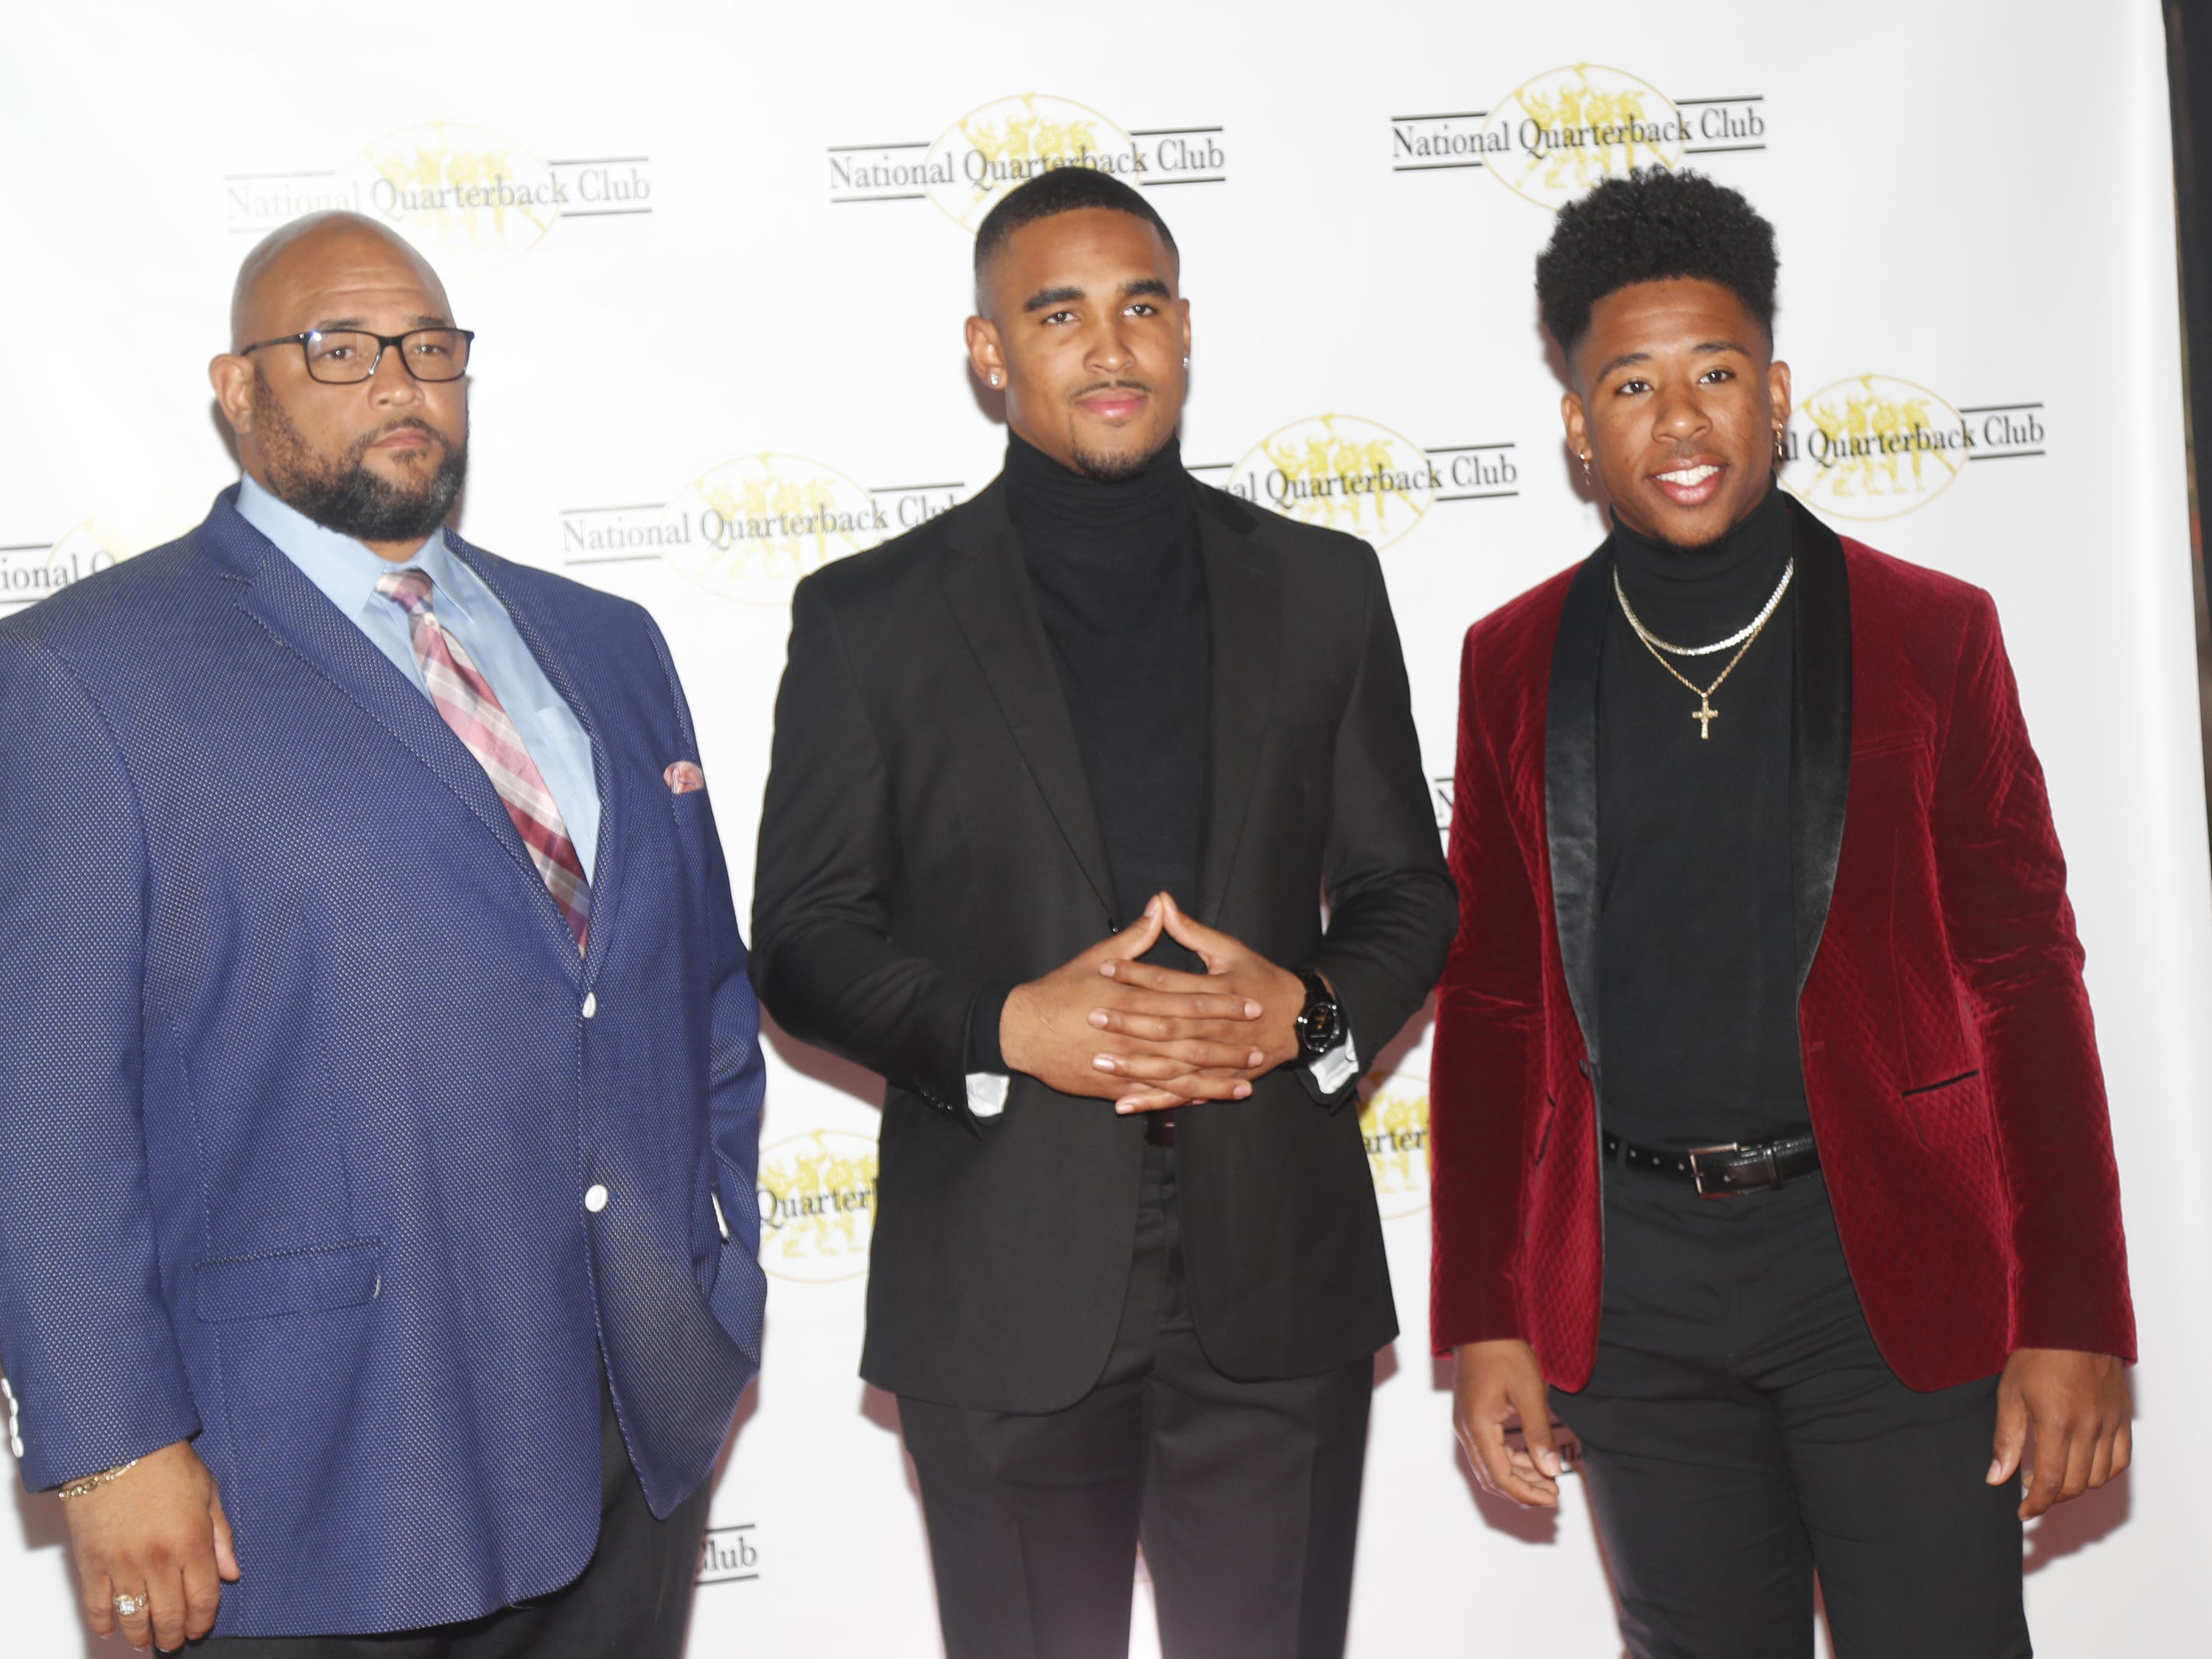 Oklahoma quarterback Jalen Hurts (center) with his father Averion Hurts (L) and his brother Averion Hurts Jr. (R) before the National Quarterback Club Awards Dinner & Hall of Fame Induction Ceremony The Scottsdale Resort at McCormick Ranch in Scottsdale, Ariz. on January 19, 2019.